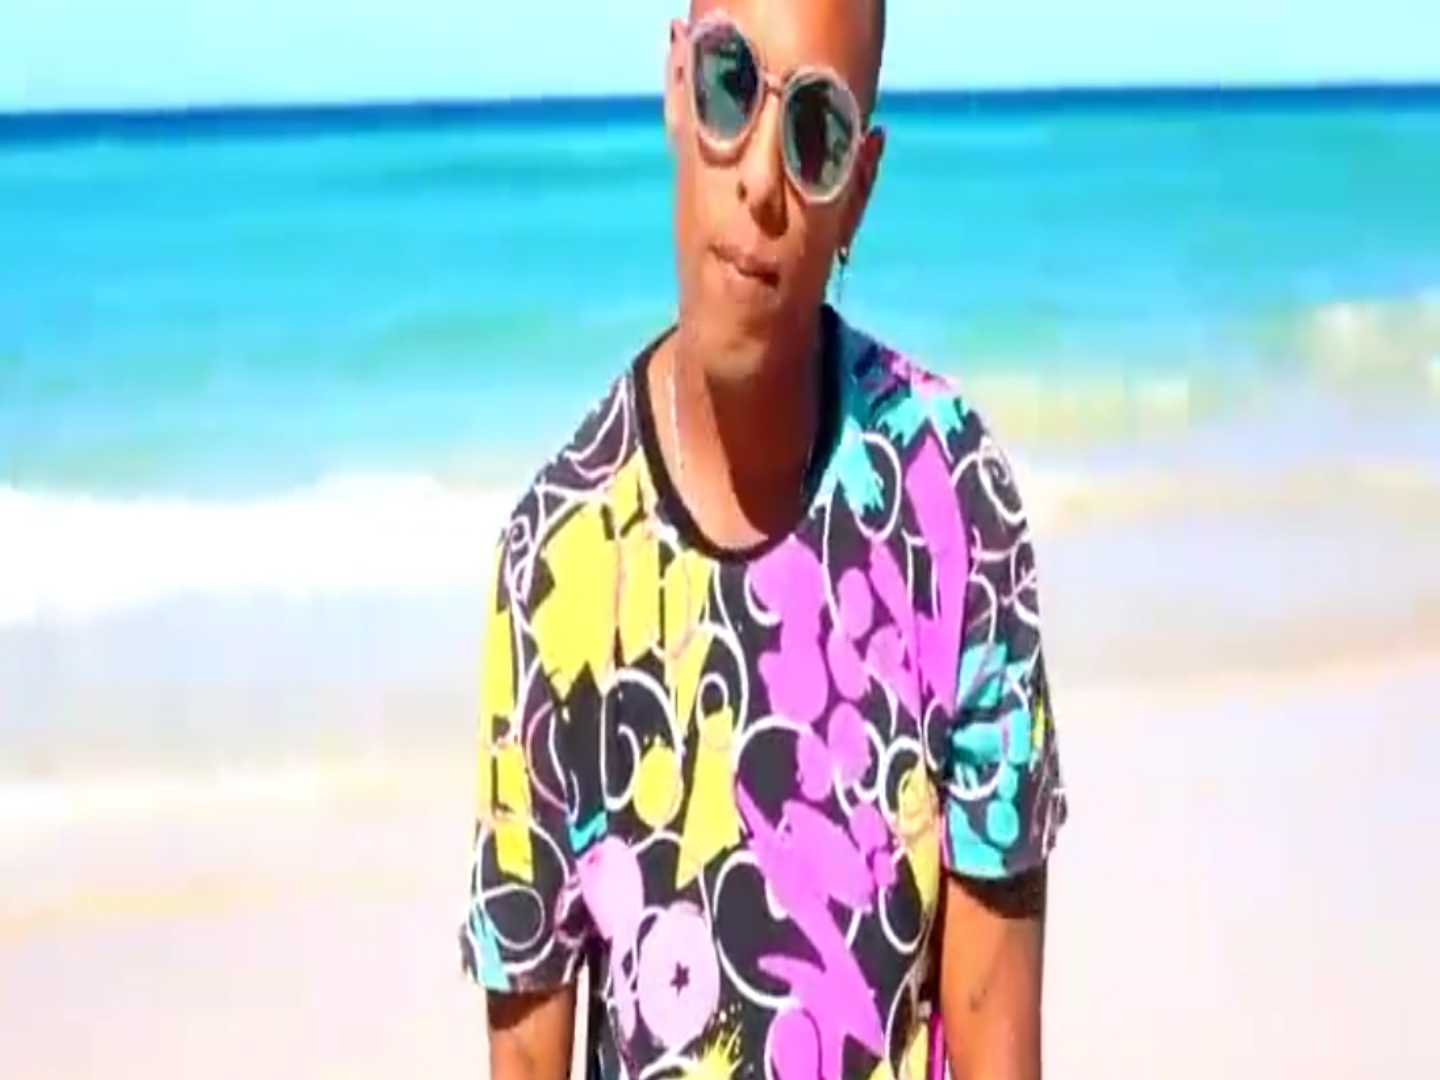 Otra Loka Mas Cubaton Cuban Reggaeton Music Video Havana Santa Maria Beach Playa